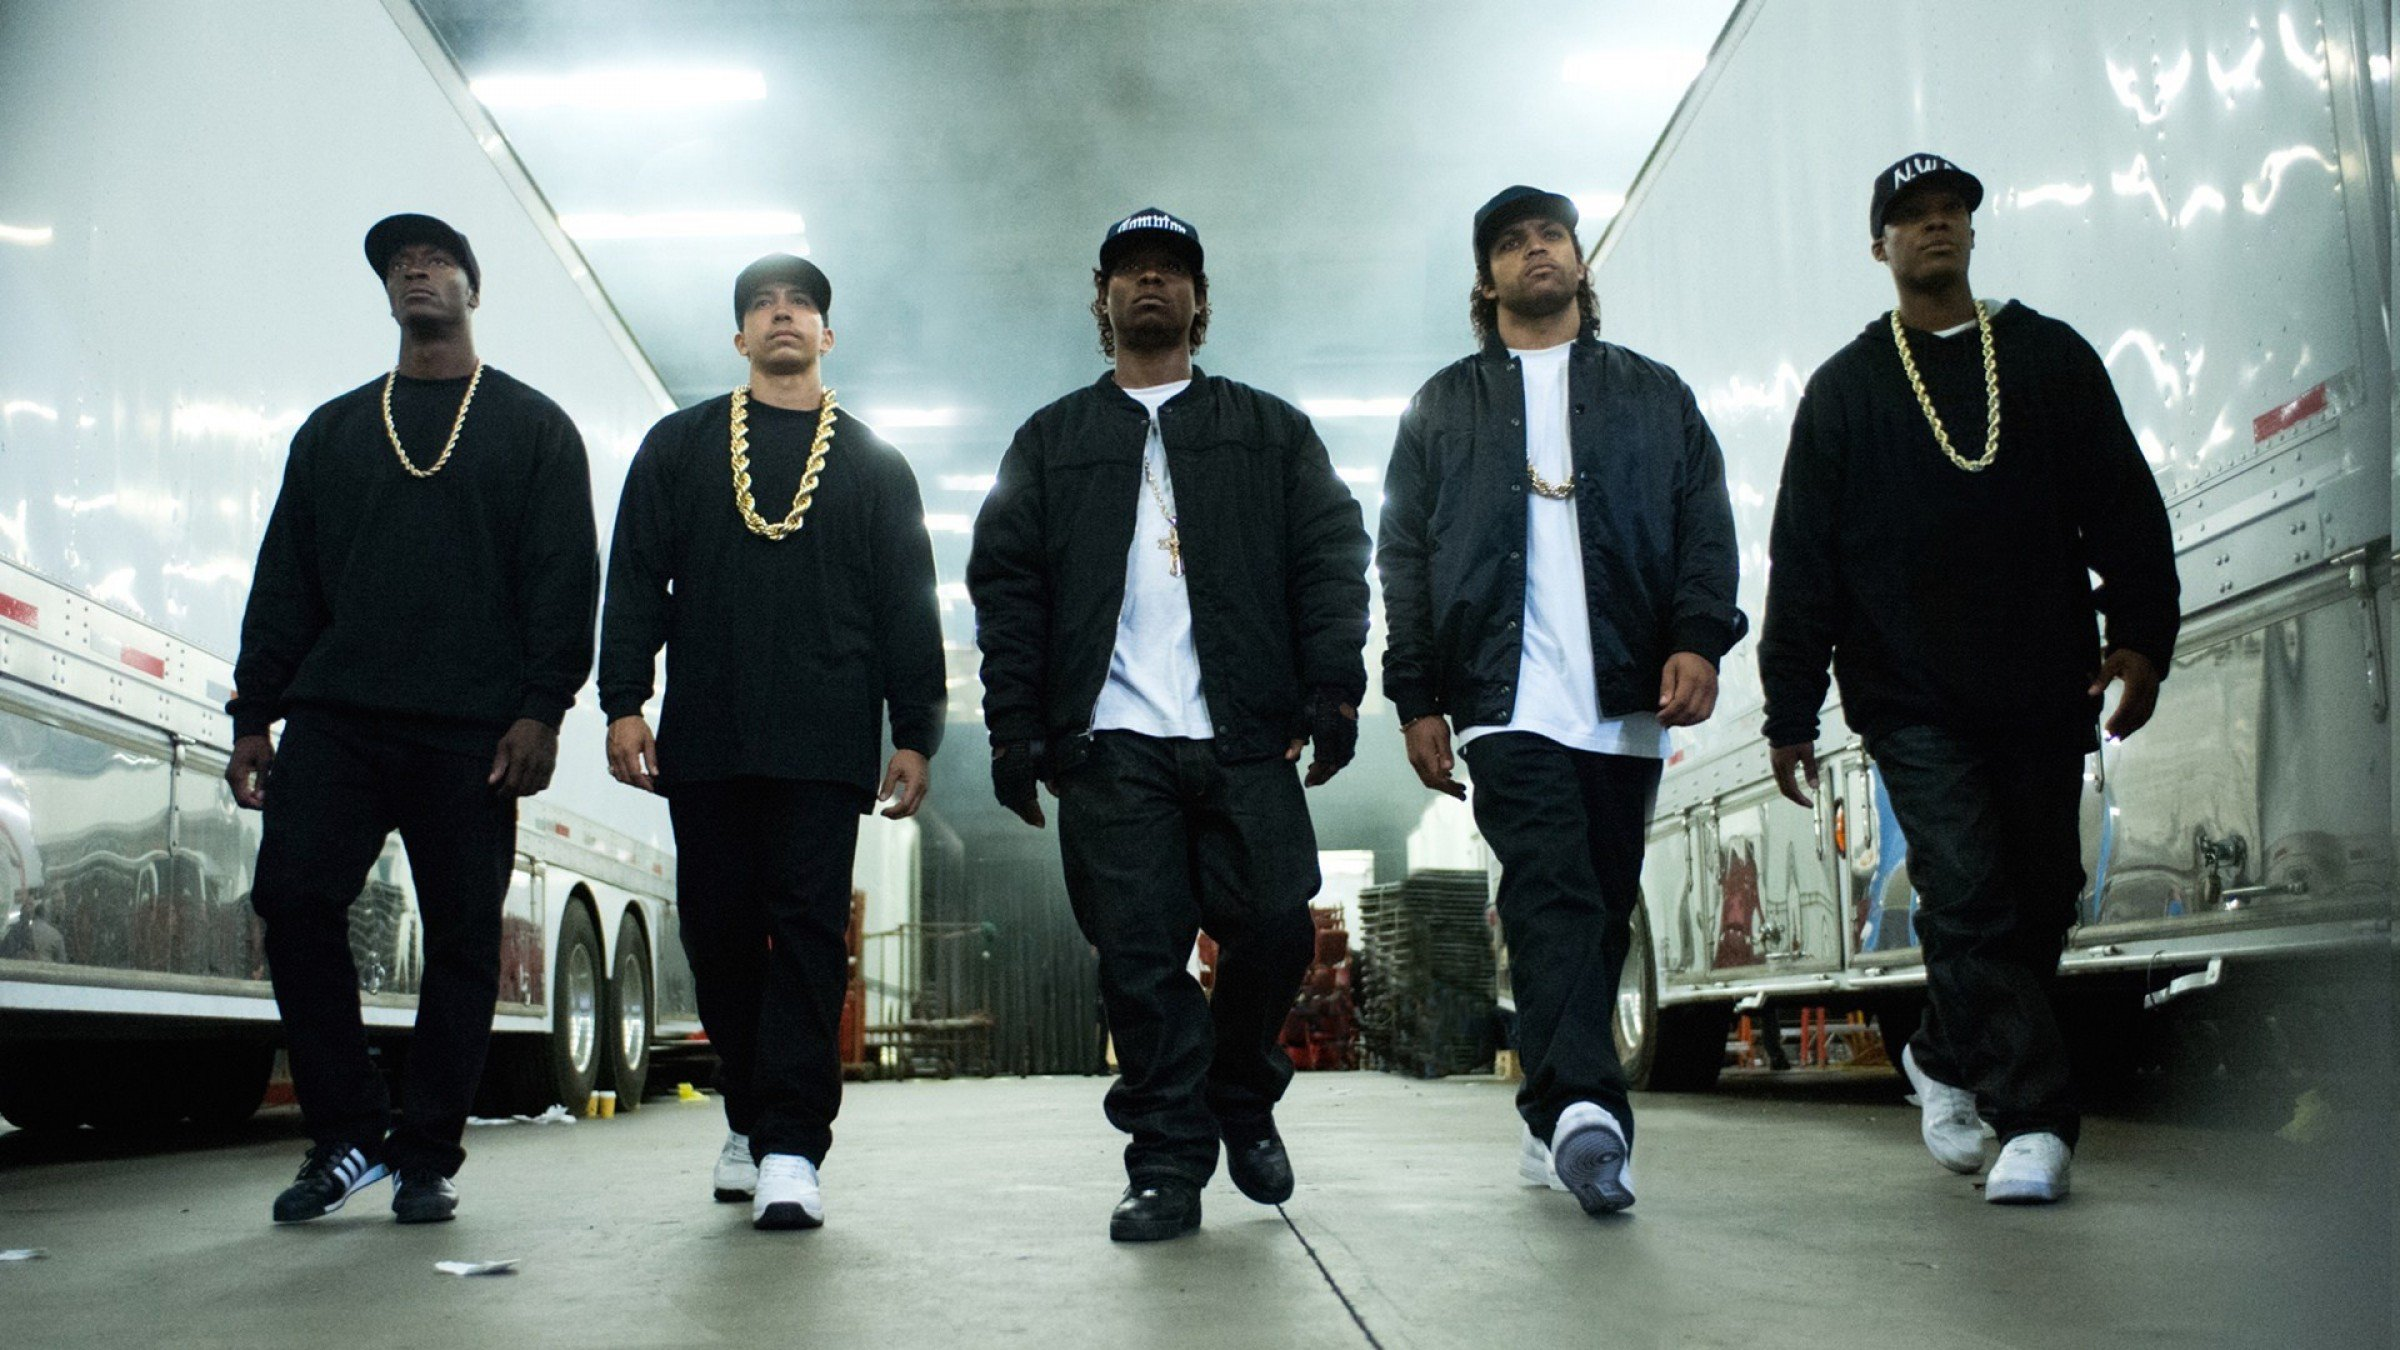 'Straight Outta Compton', 'Trainwreck' & More Screenplays Free For Your Consideration